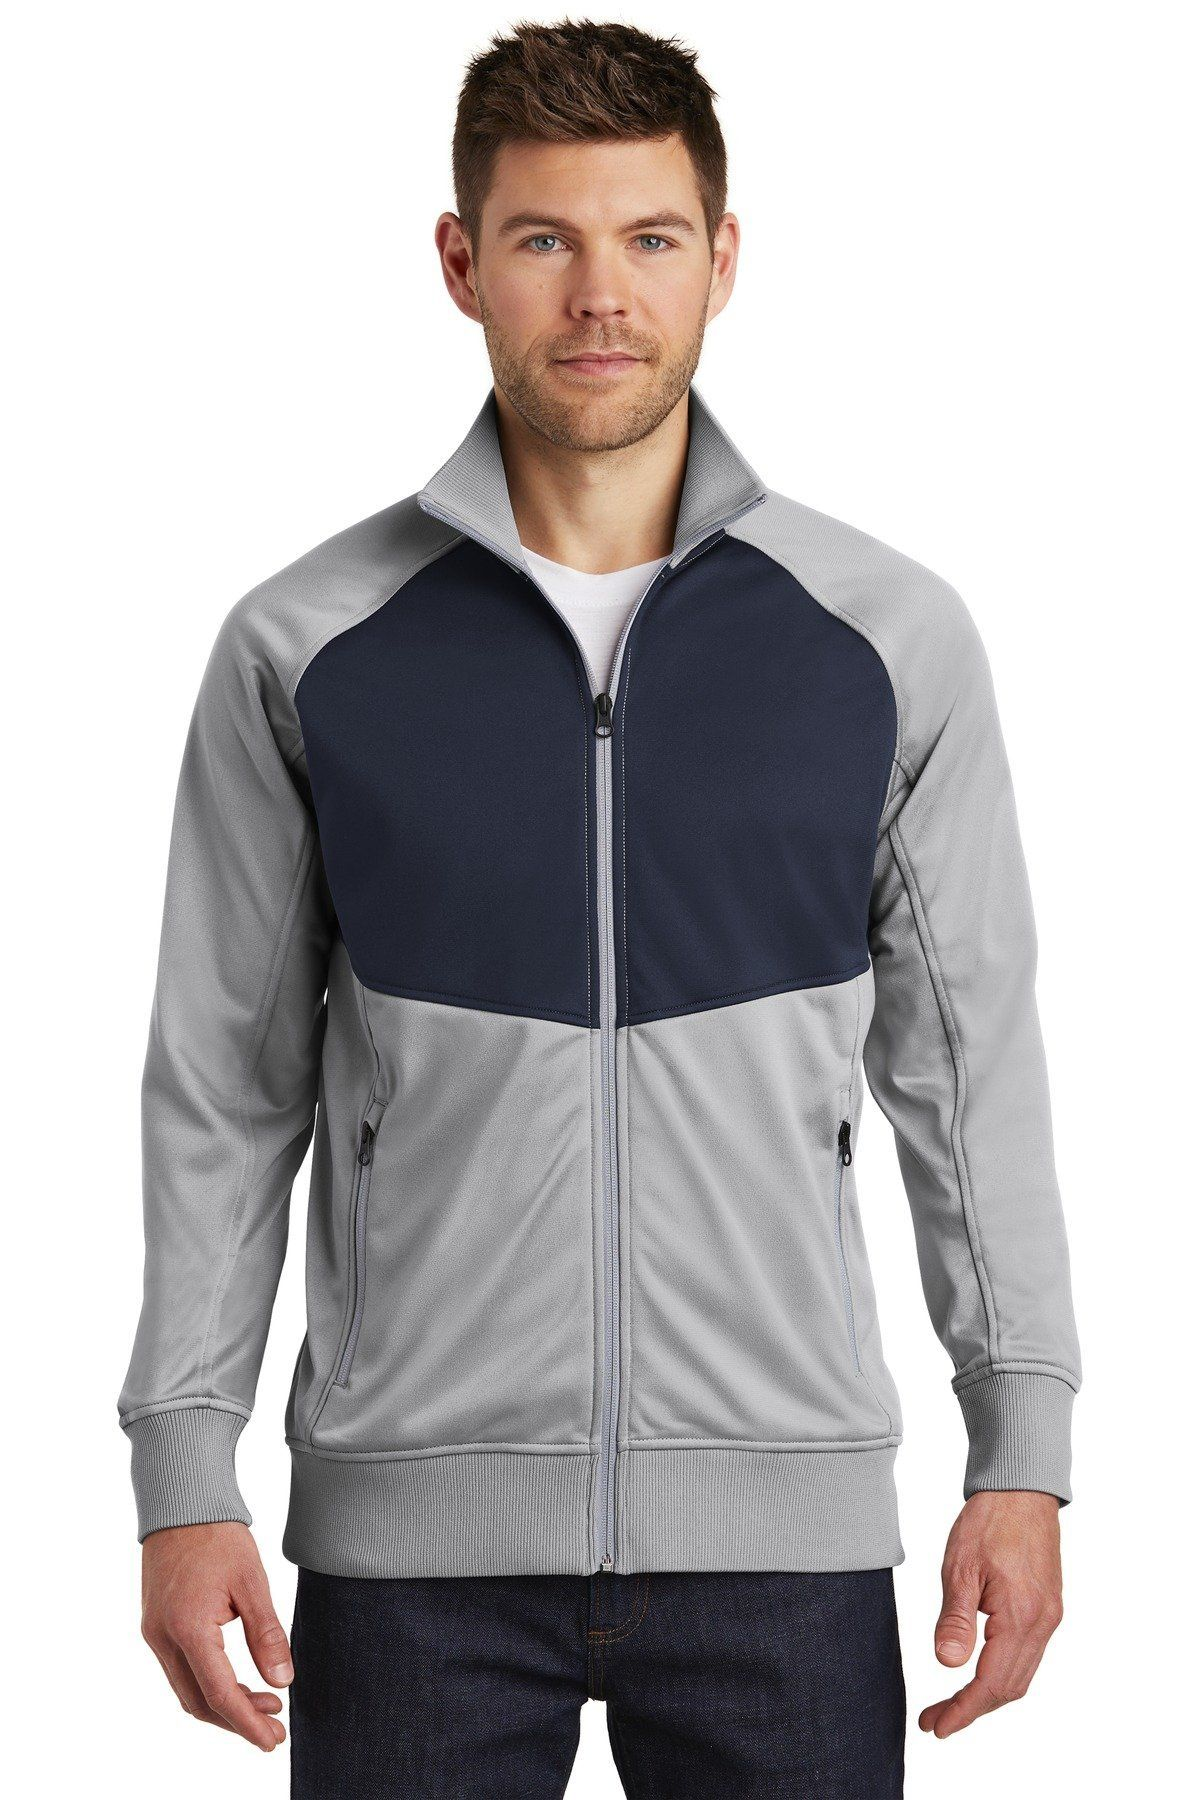 The North Face Tech FullZip Fleece Jacket NF0A3SEW Mid